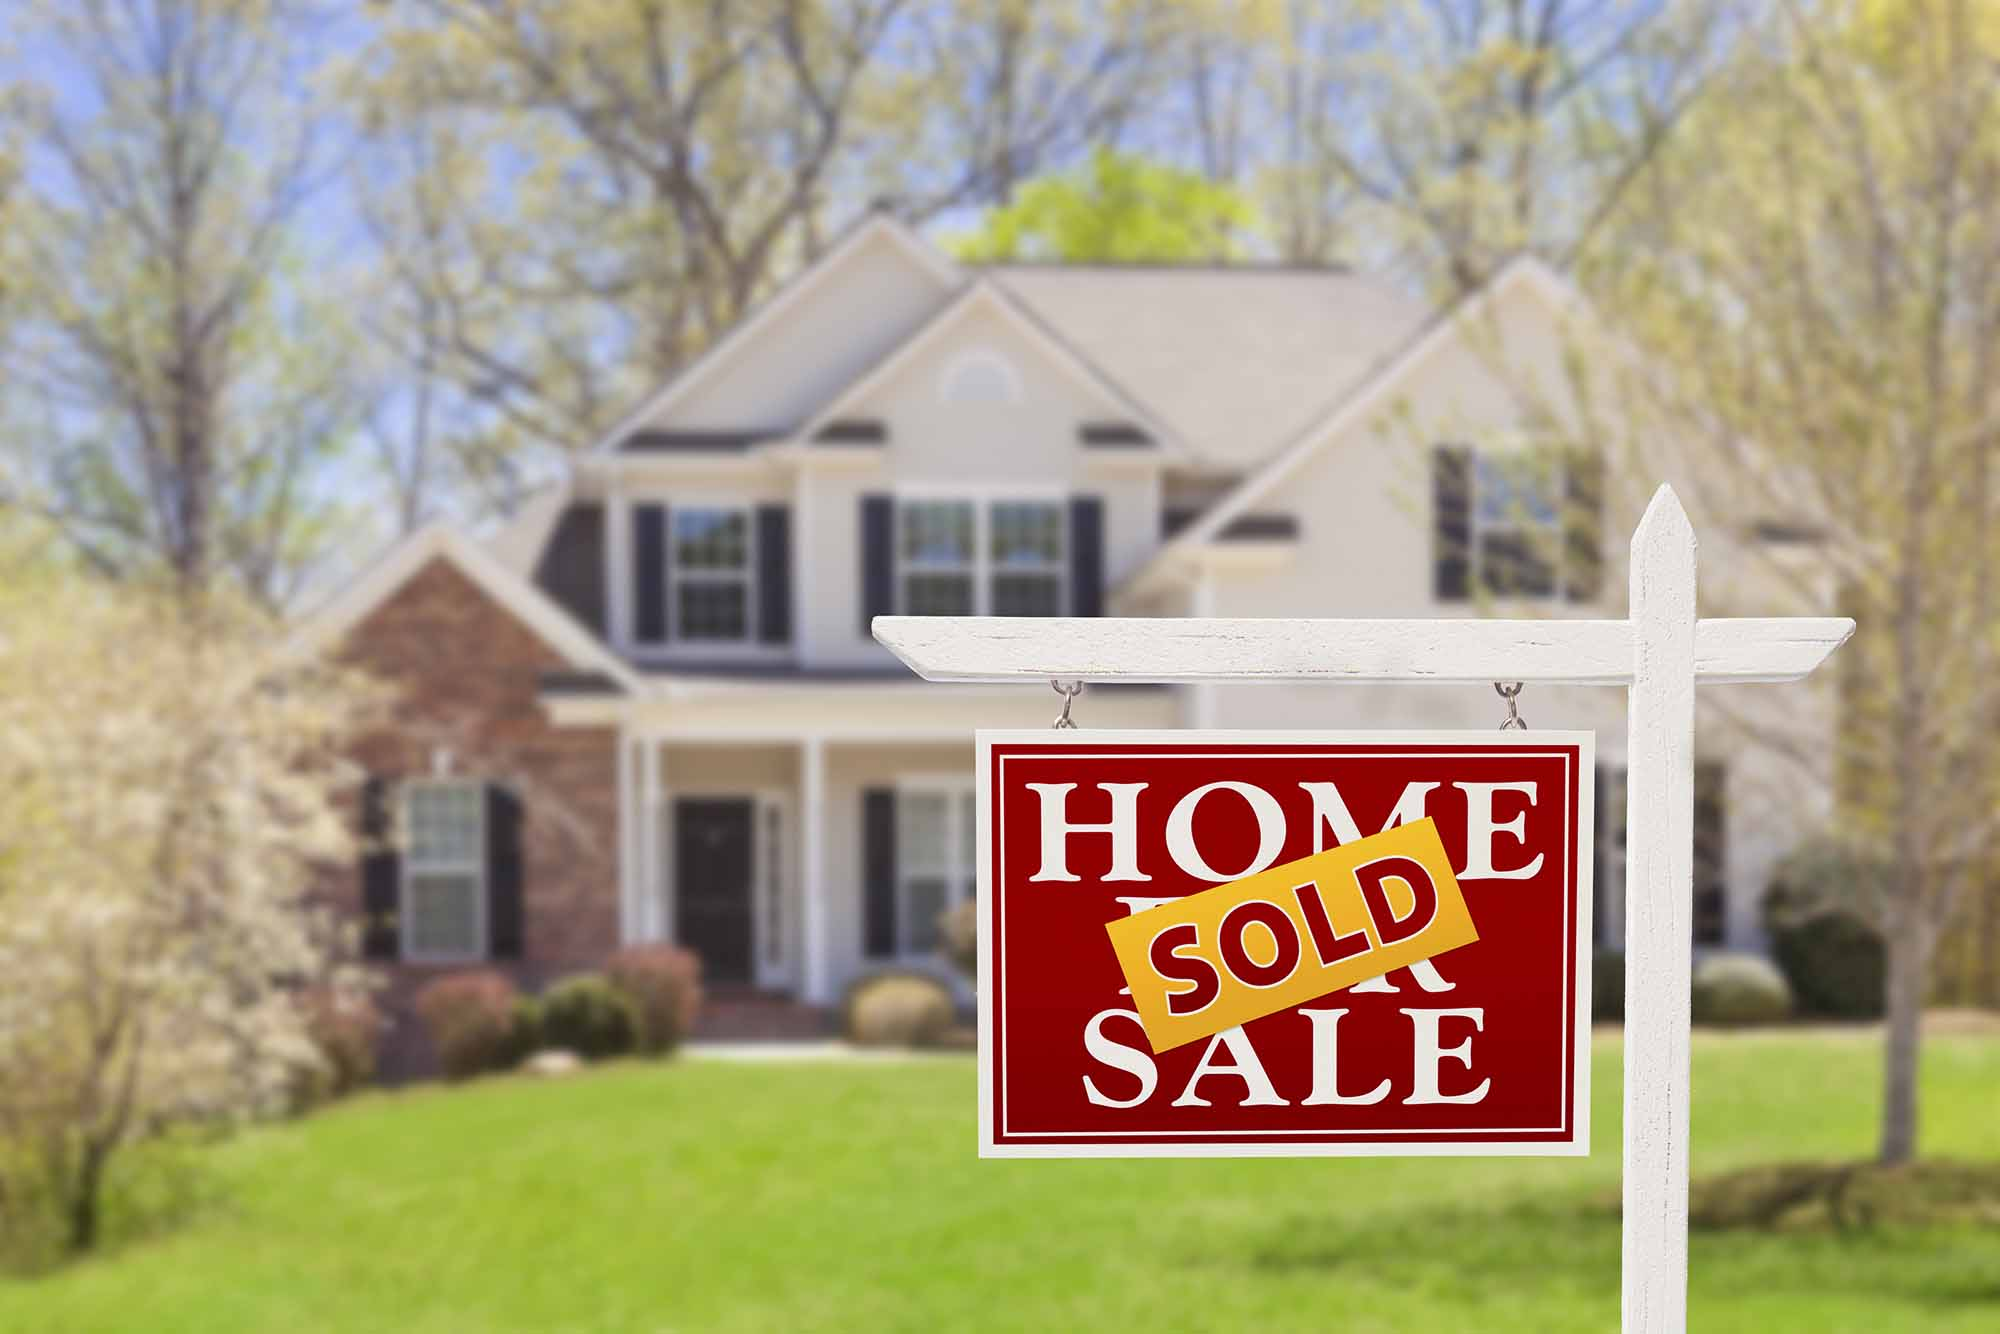 bigstock-Sold-Home-For-Sale-Real-Estate-44841031